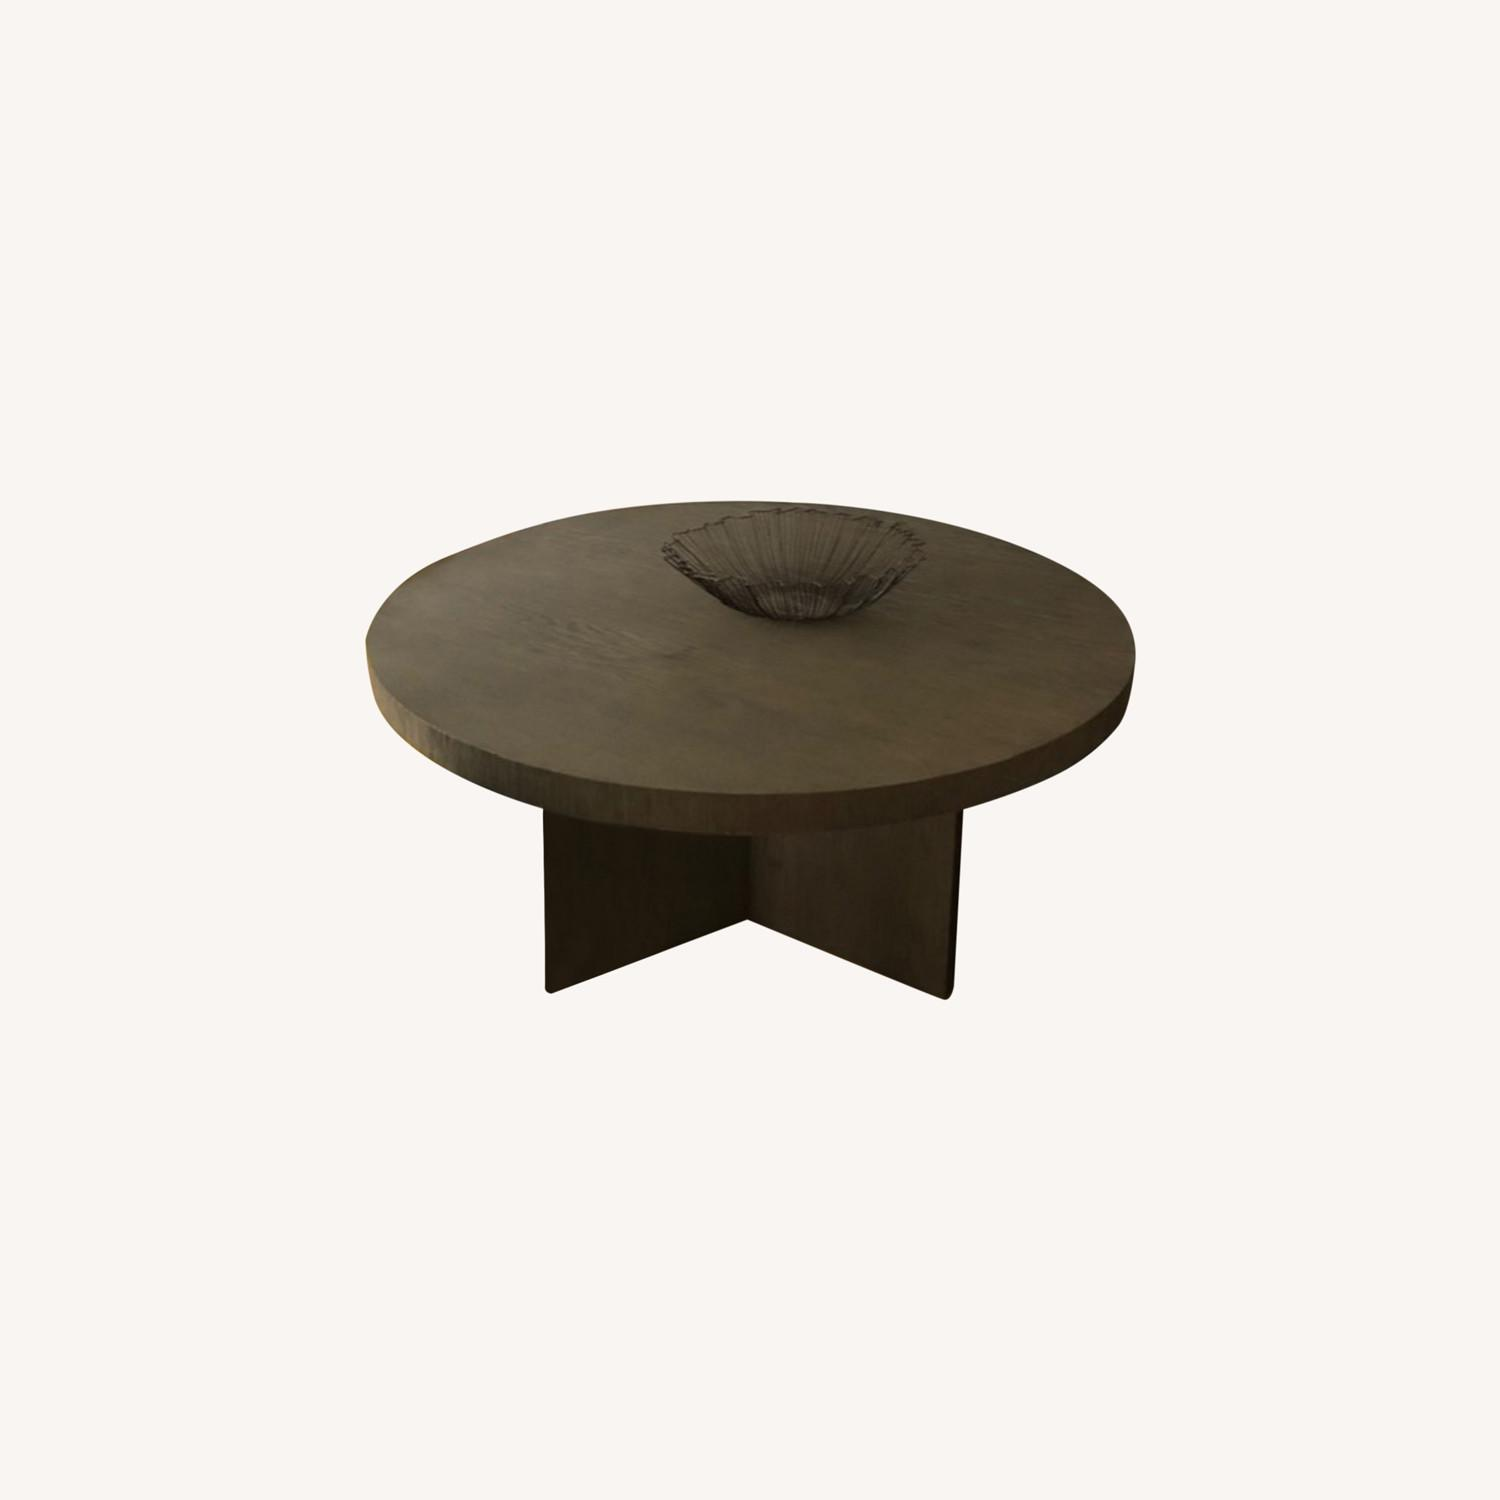 Restoration Hardware Dining Table - image-0